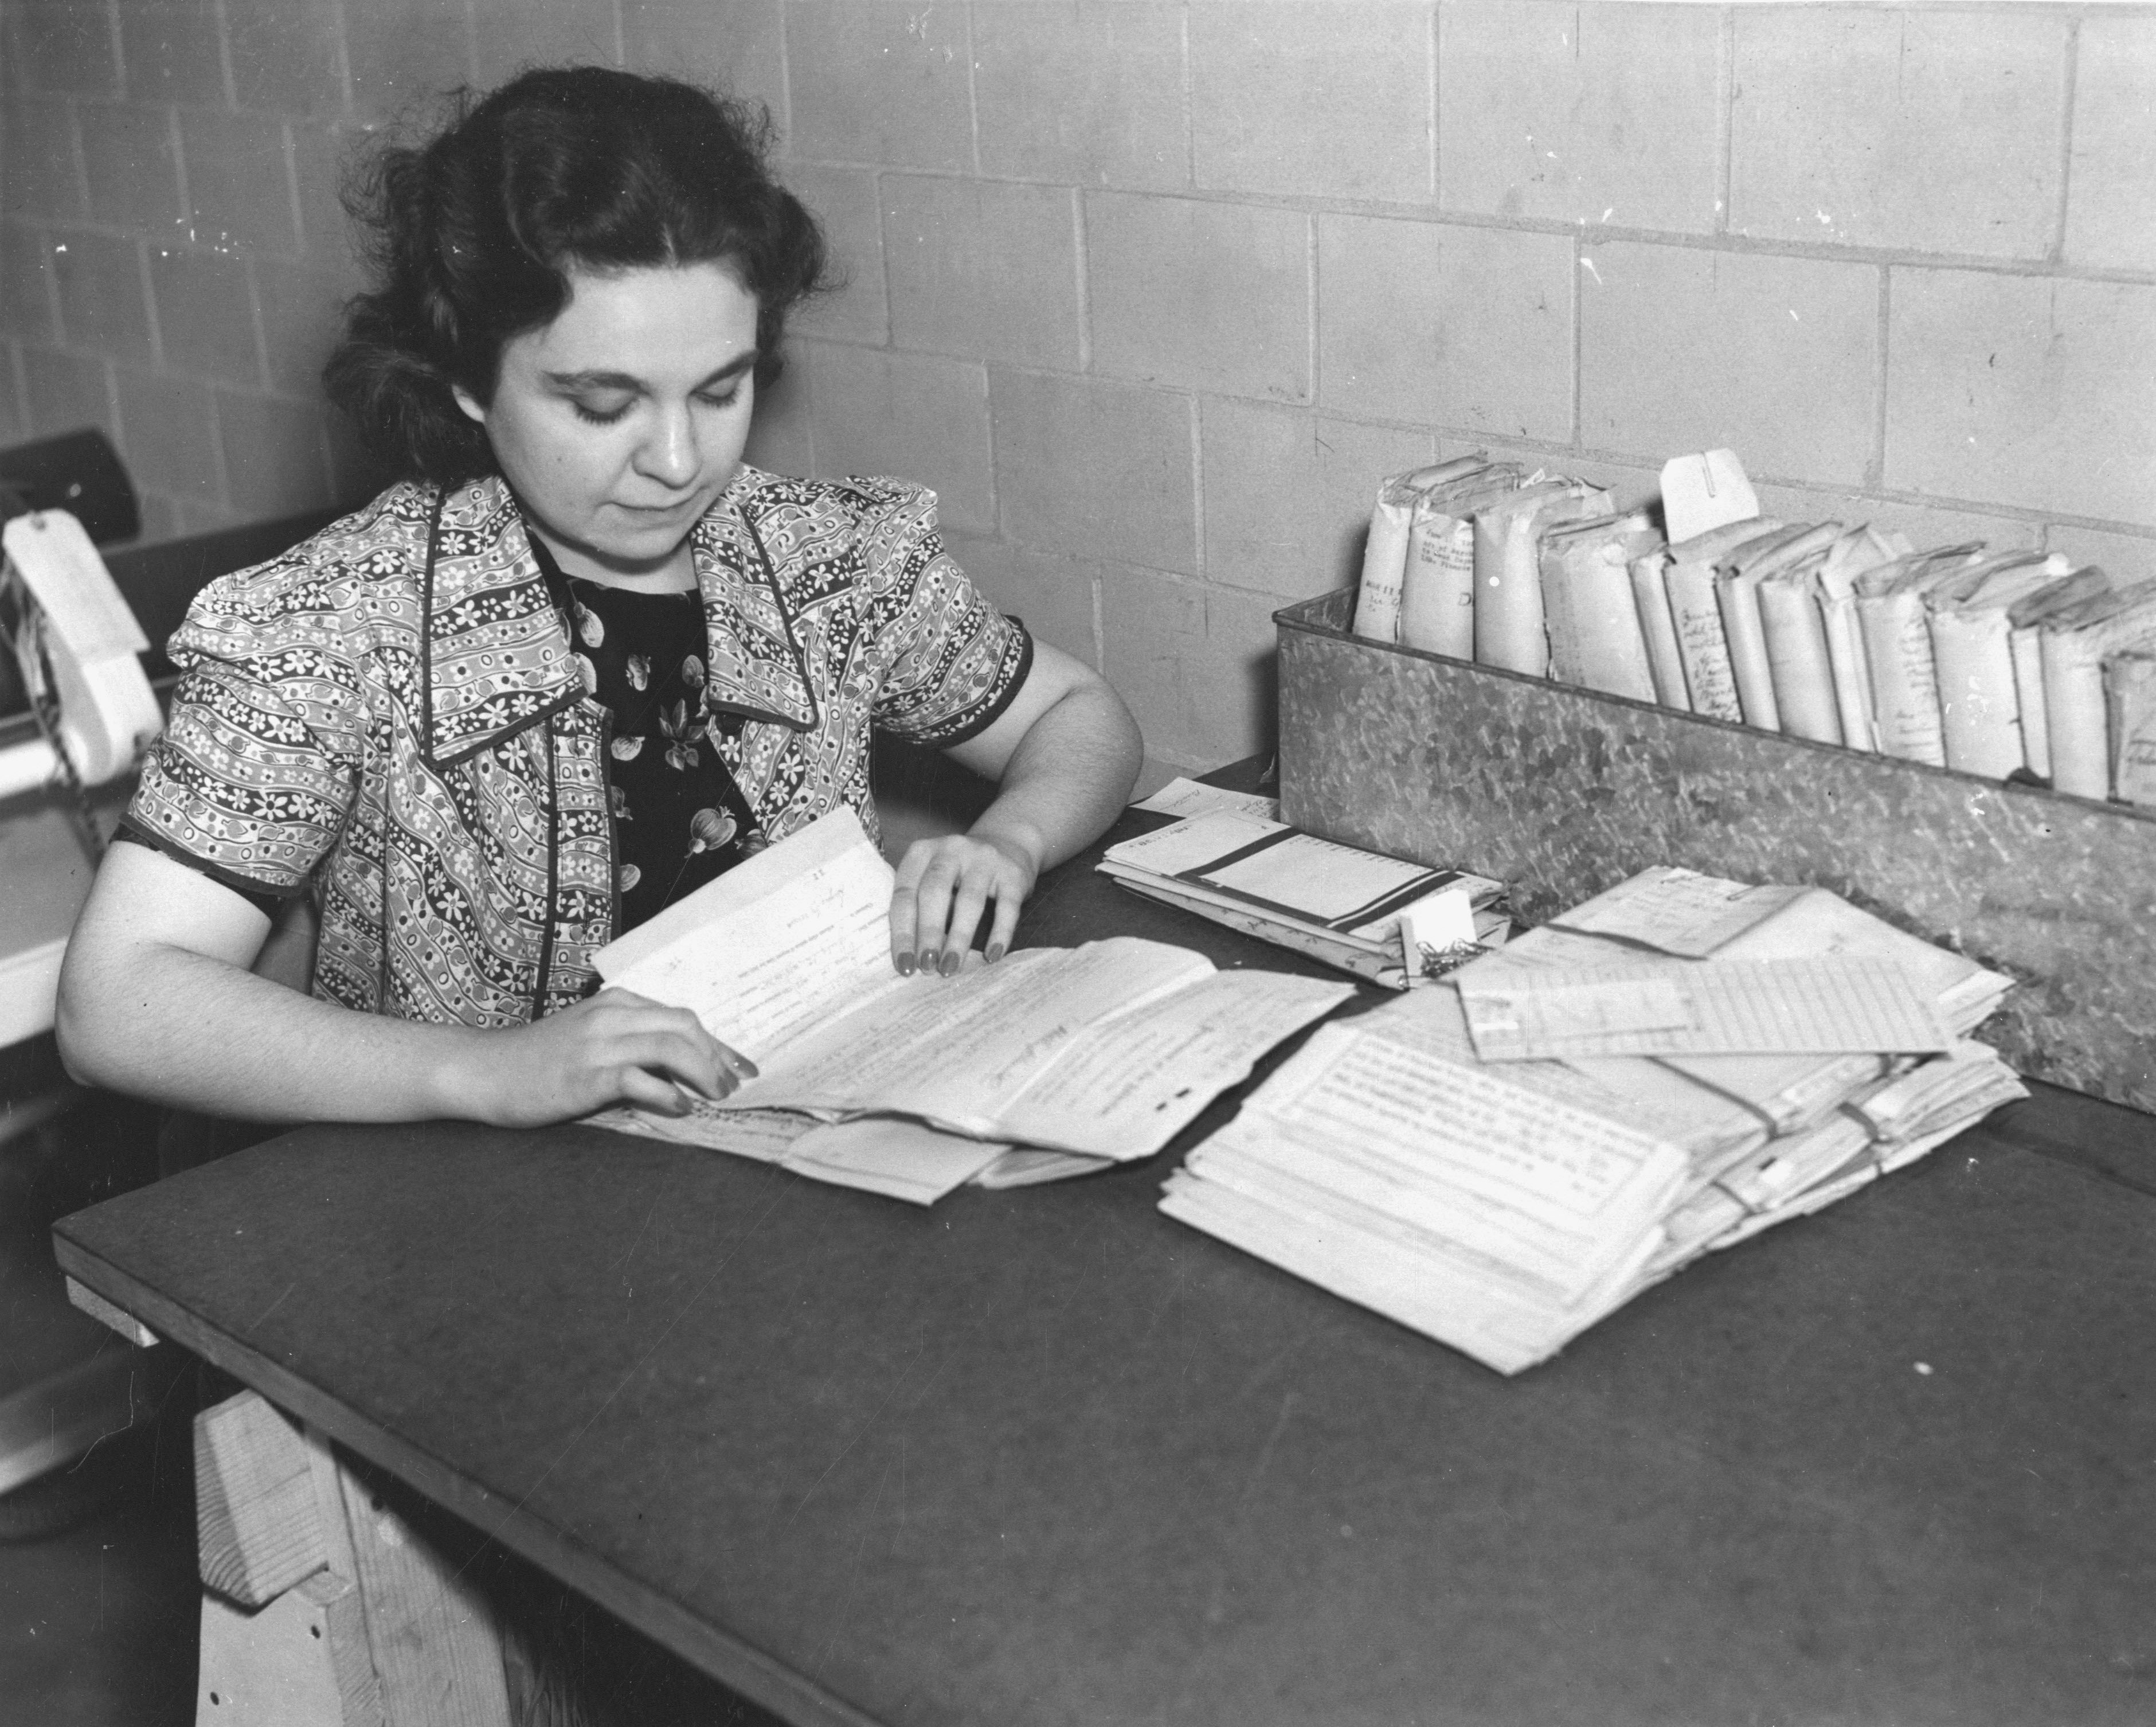 64-PR-26-2 - Worker Unfolding Pension Records, ca. 1939.jpg